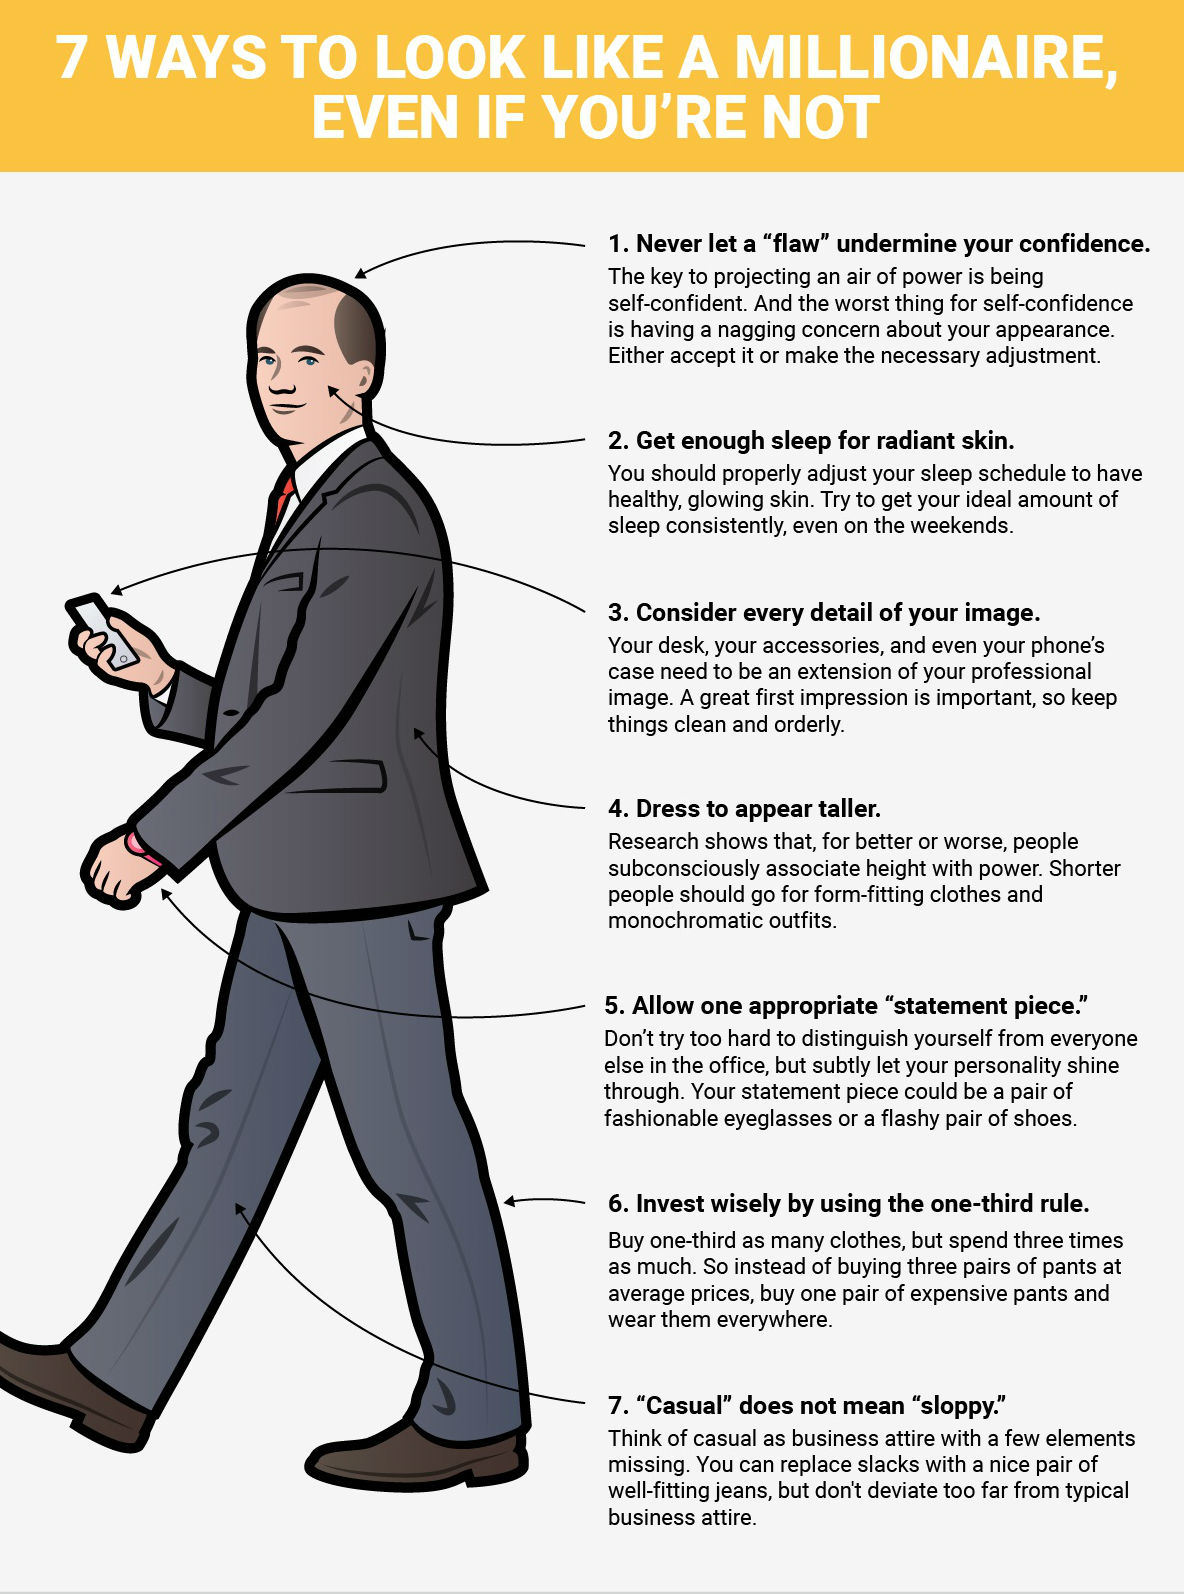 how-to-look-like-a-millionaire-even-if-you're-not_2016